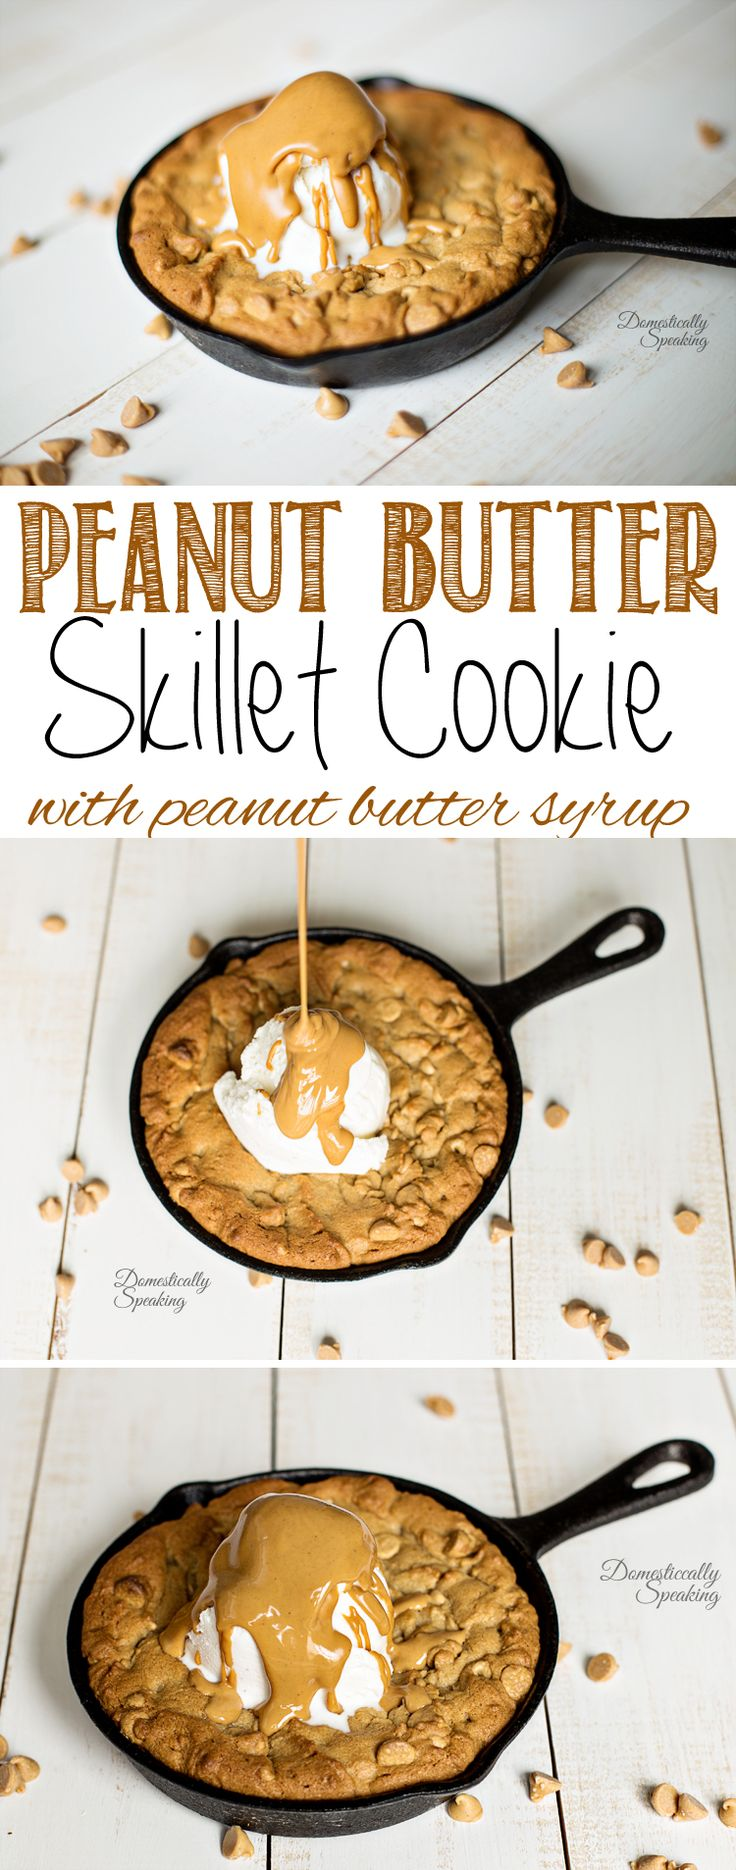 When aisha cooks how to make oatmeal custard my style aisha - National Peanut Butter Day Ultimate Skillet Peanut Butter Cookie